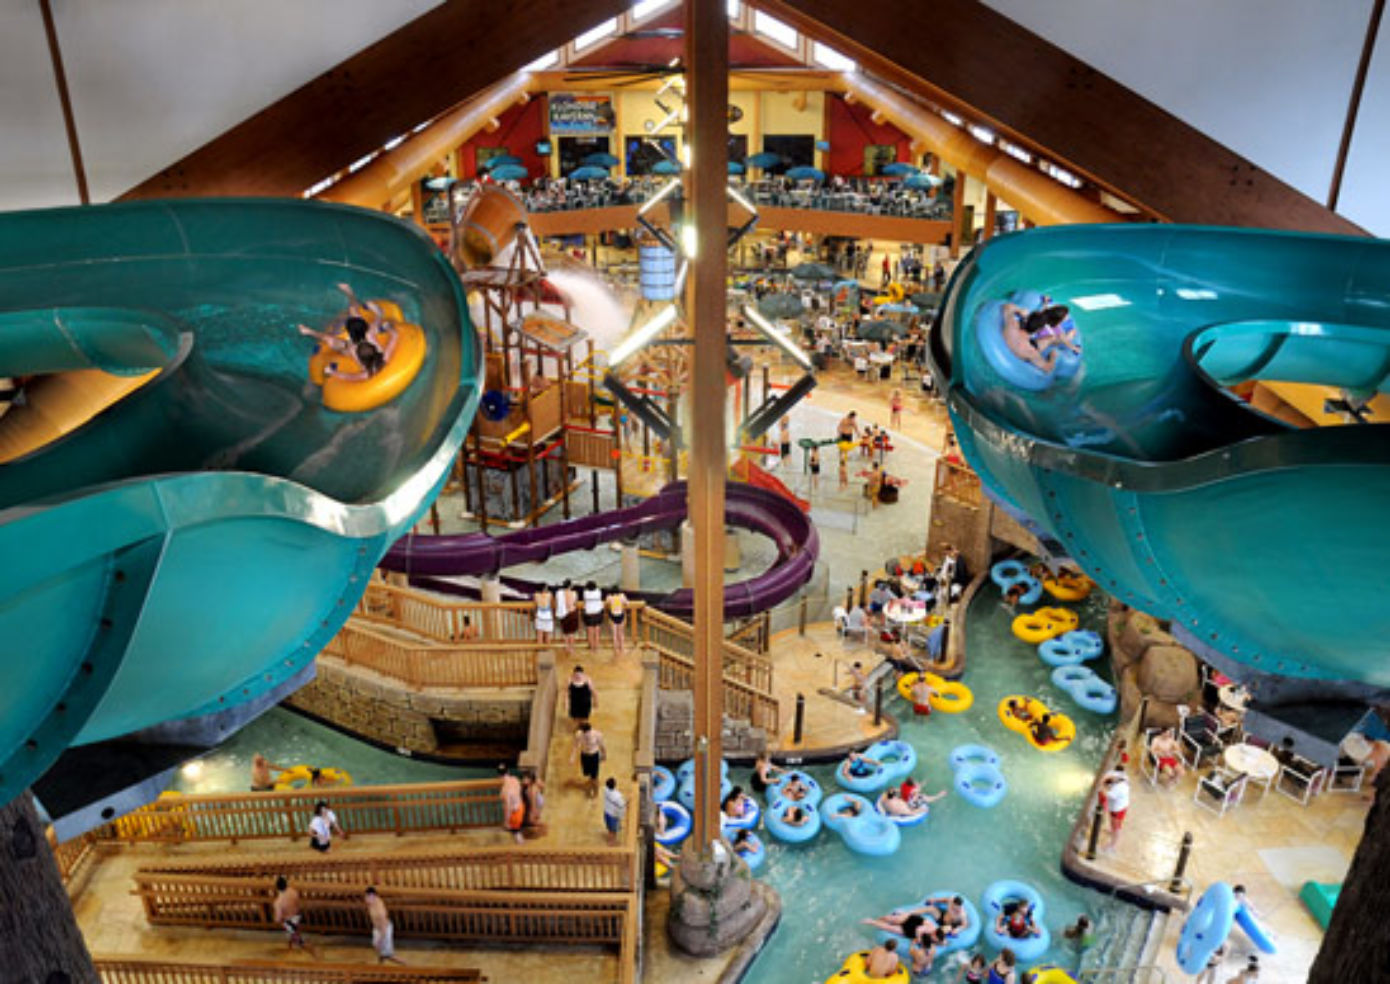 Photos: Top 10 Indoor Waterparks In The U.S.